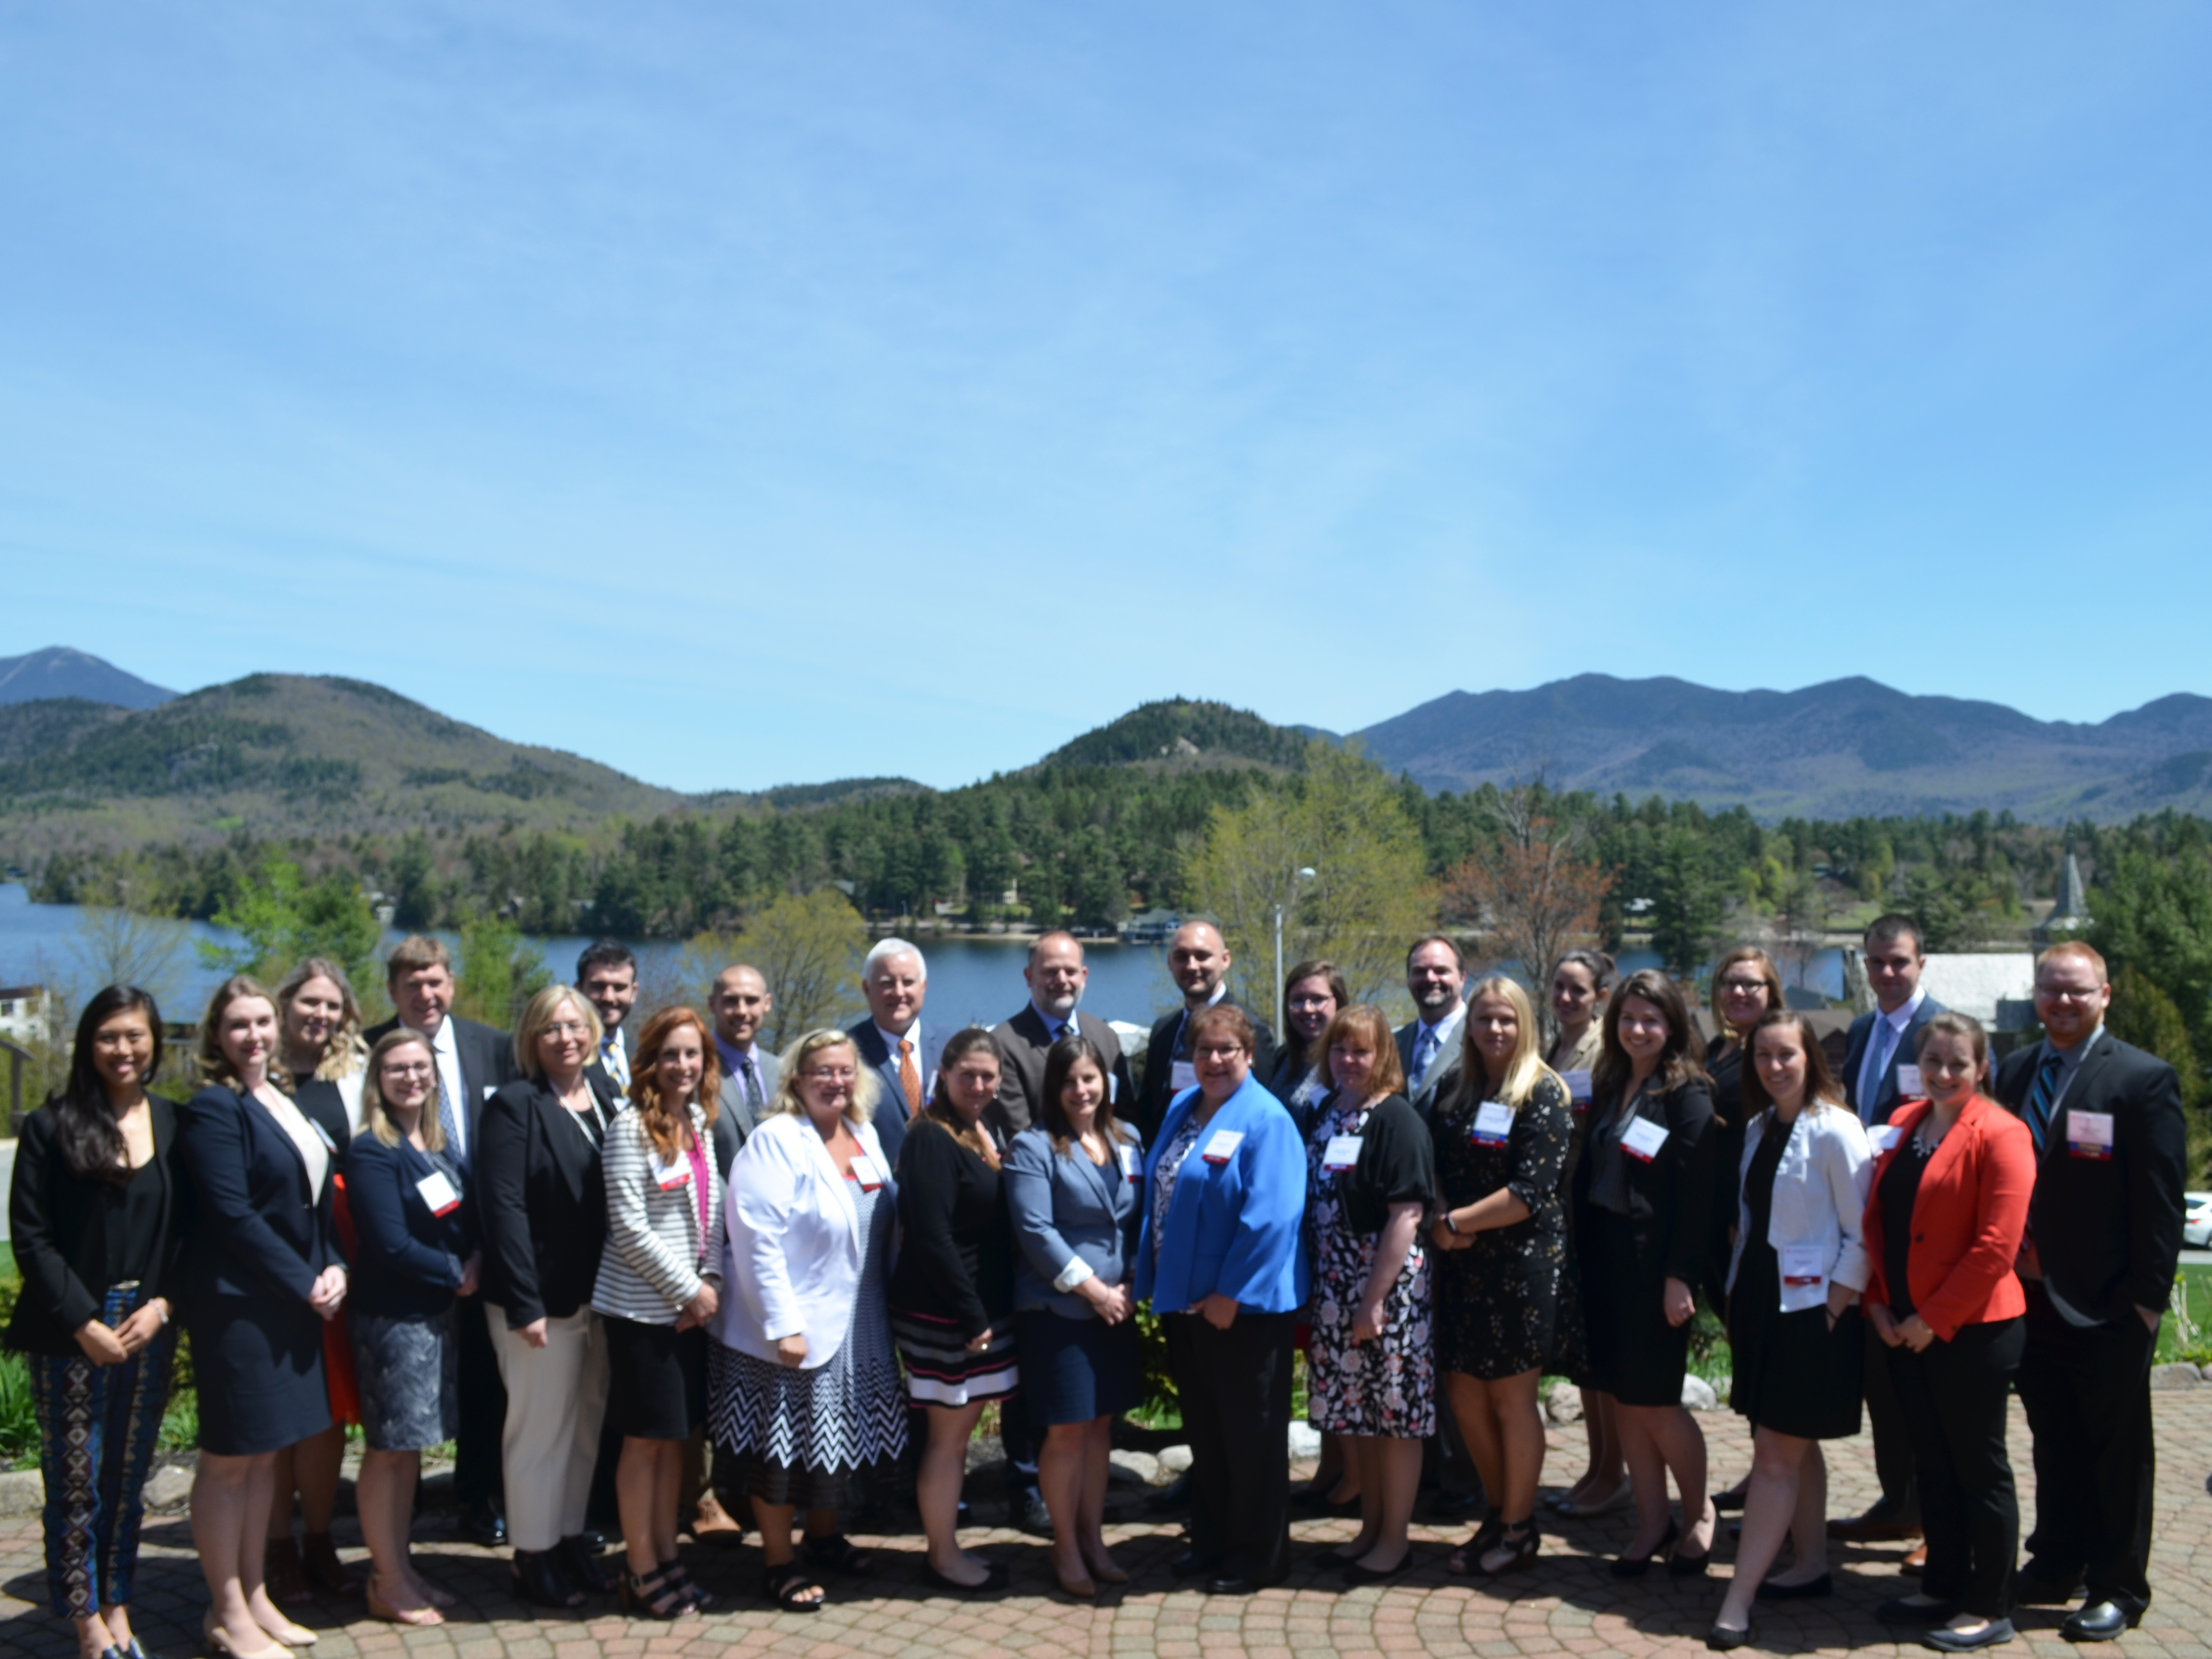 Our Atria 340B team standing in front of mirror lake and the mountains in Lake placid NY